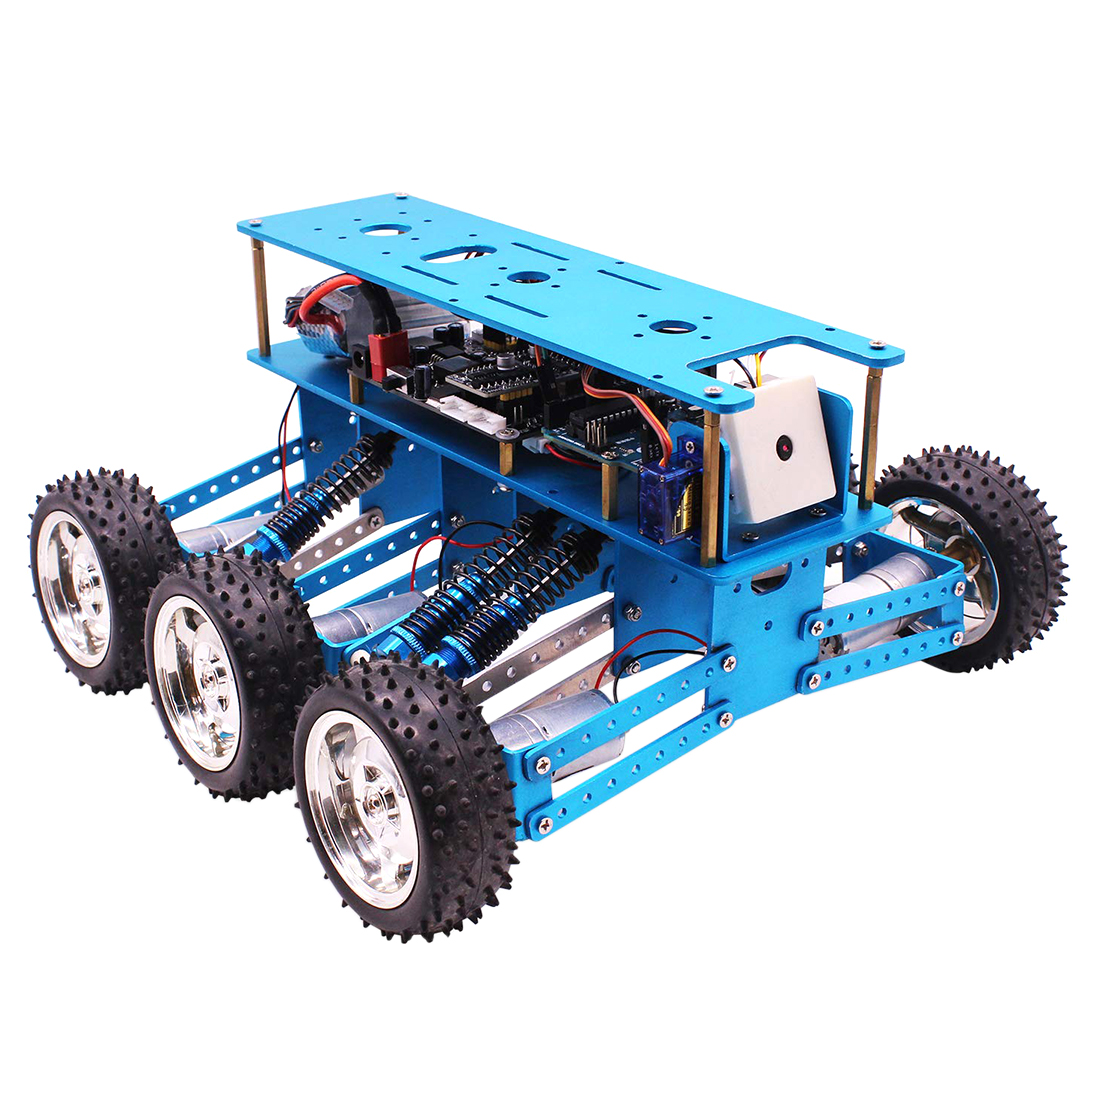 6WD Off-Road Robot Car With Camera For Arduino UNO DIY Kit Robot For Programming Intelligent Education And Learning Toy For Kid